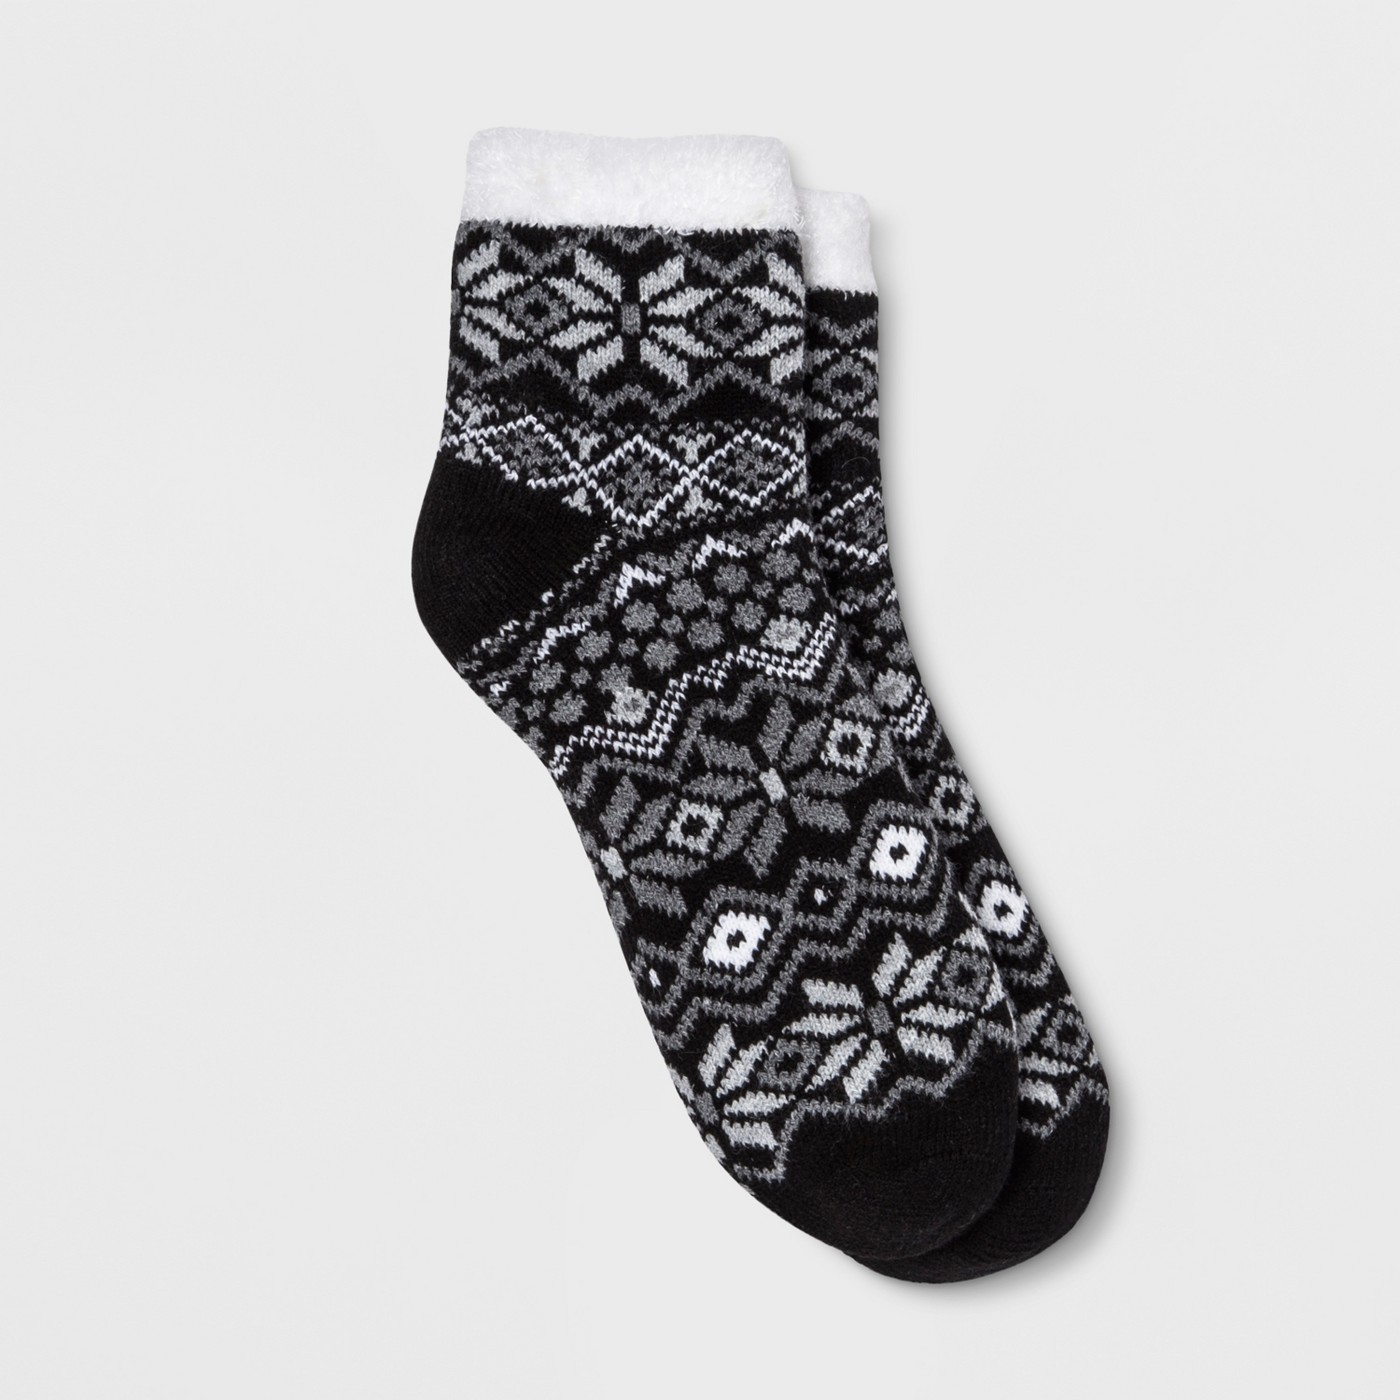 Women's Fair Isle Double Lined Cozy Ankle Socks - Gilligan & O'Malley™ Black One Size - image 1 of 1